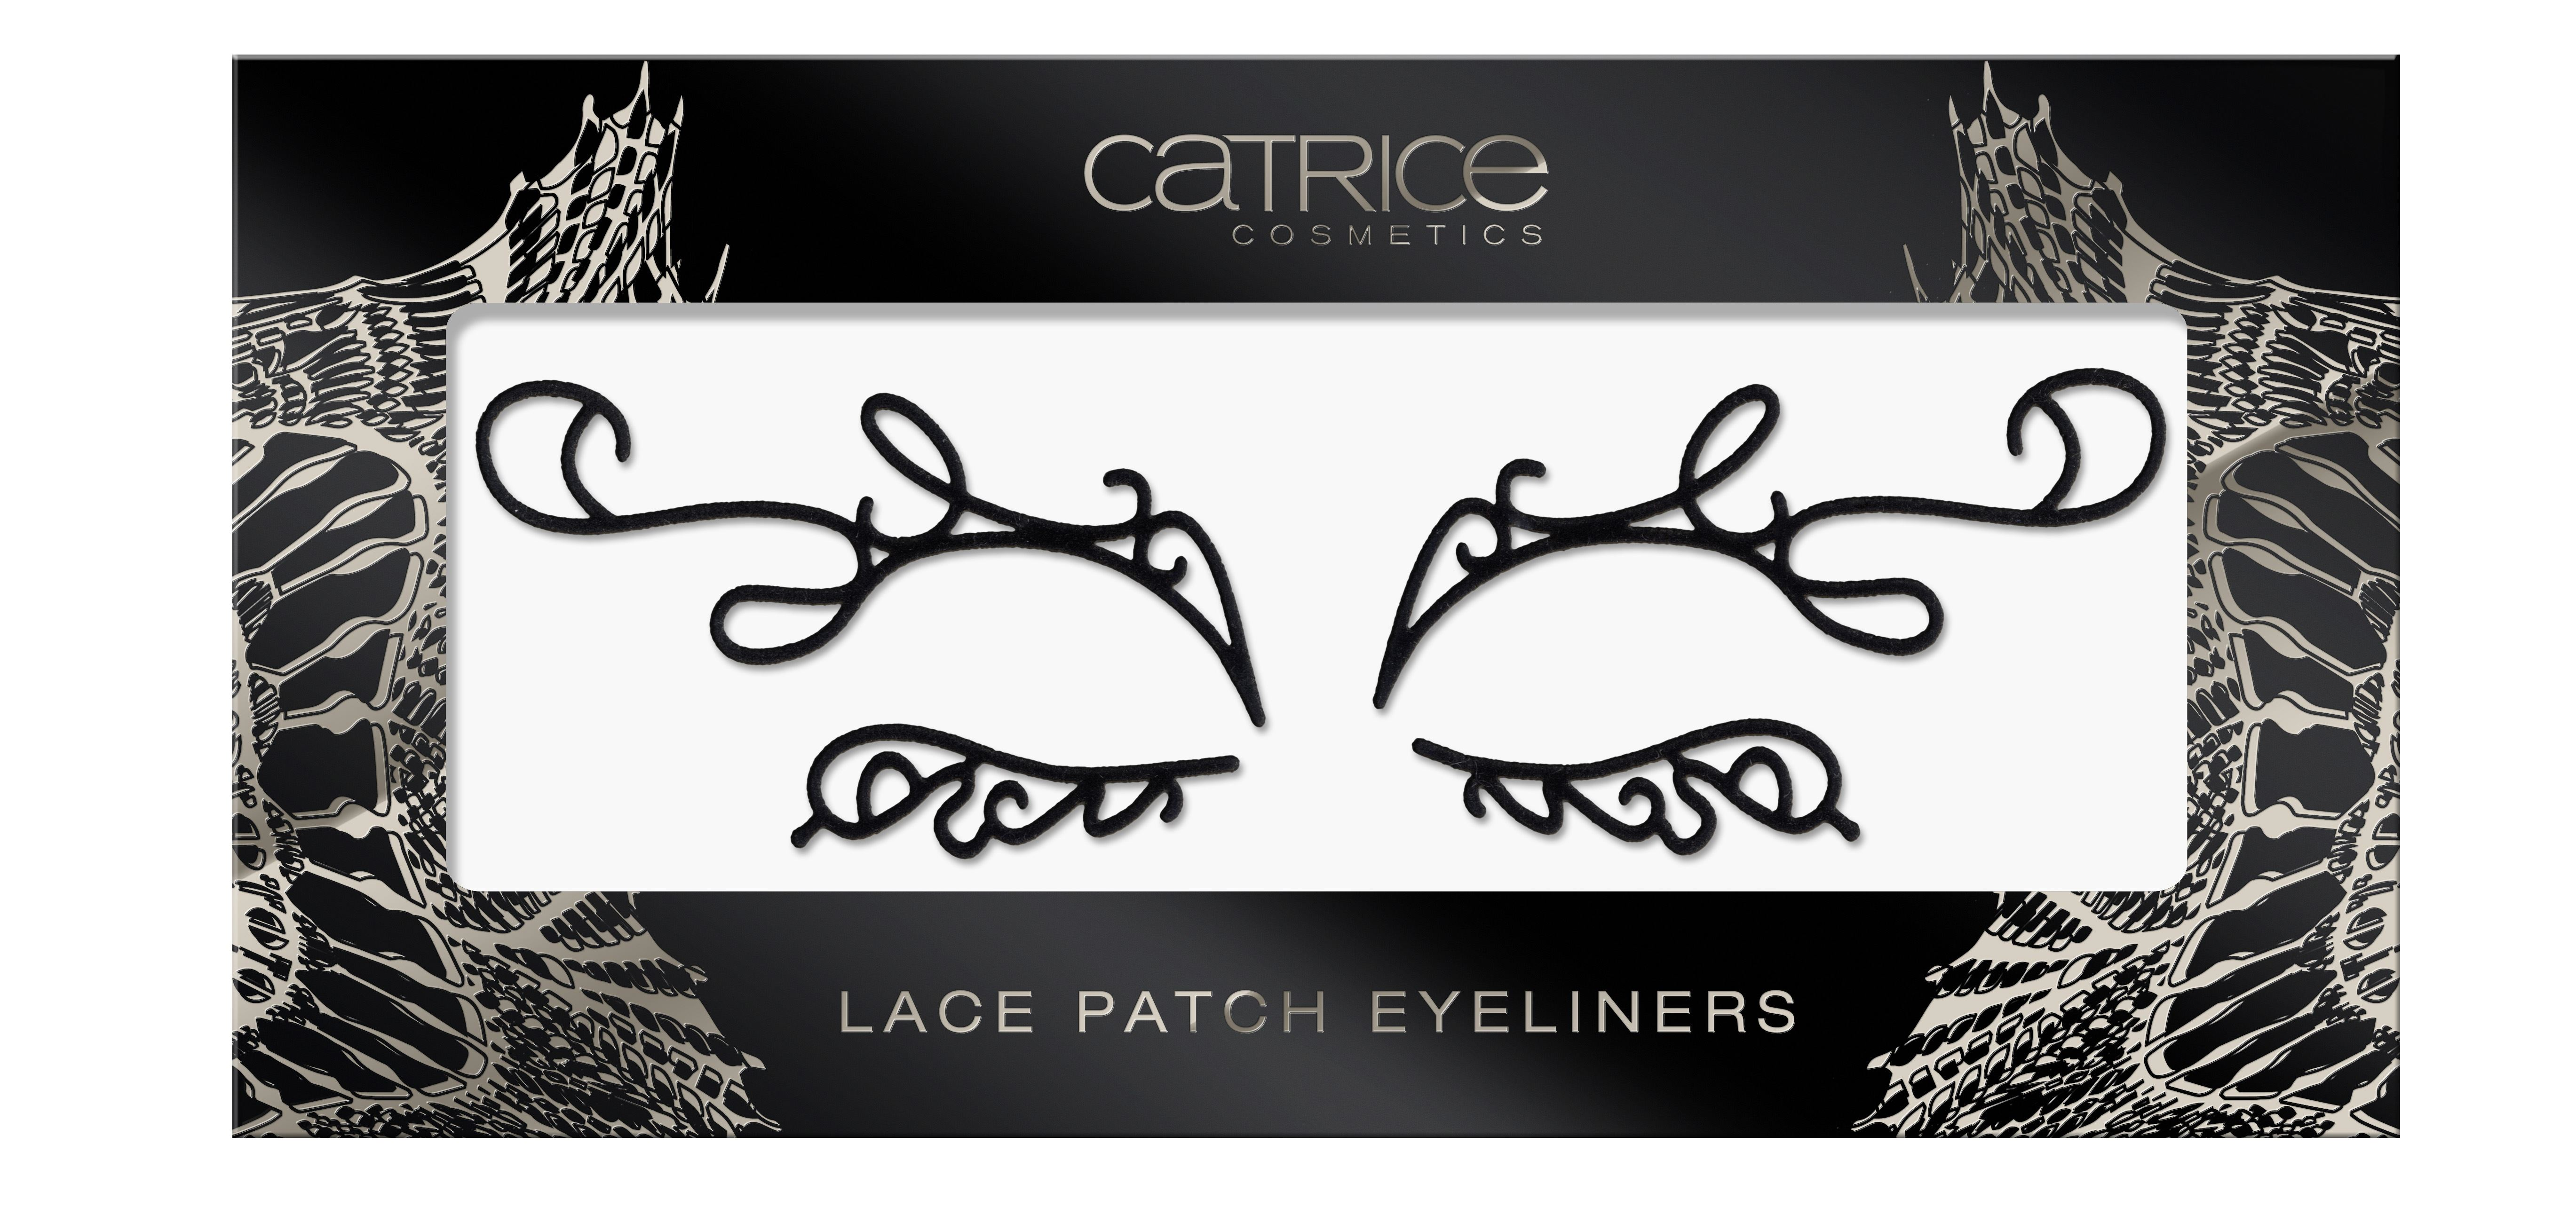 Catrice Thrilling Me Softly Lace Patch Eyeliners